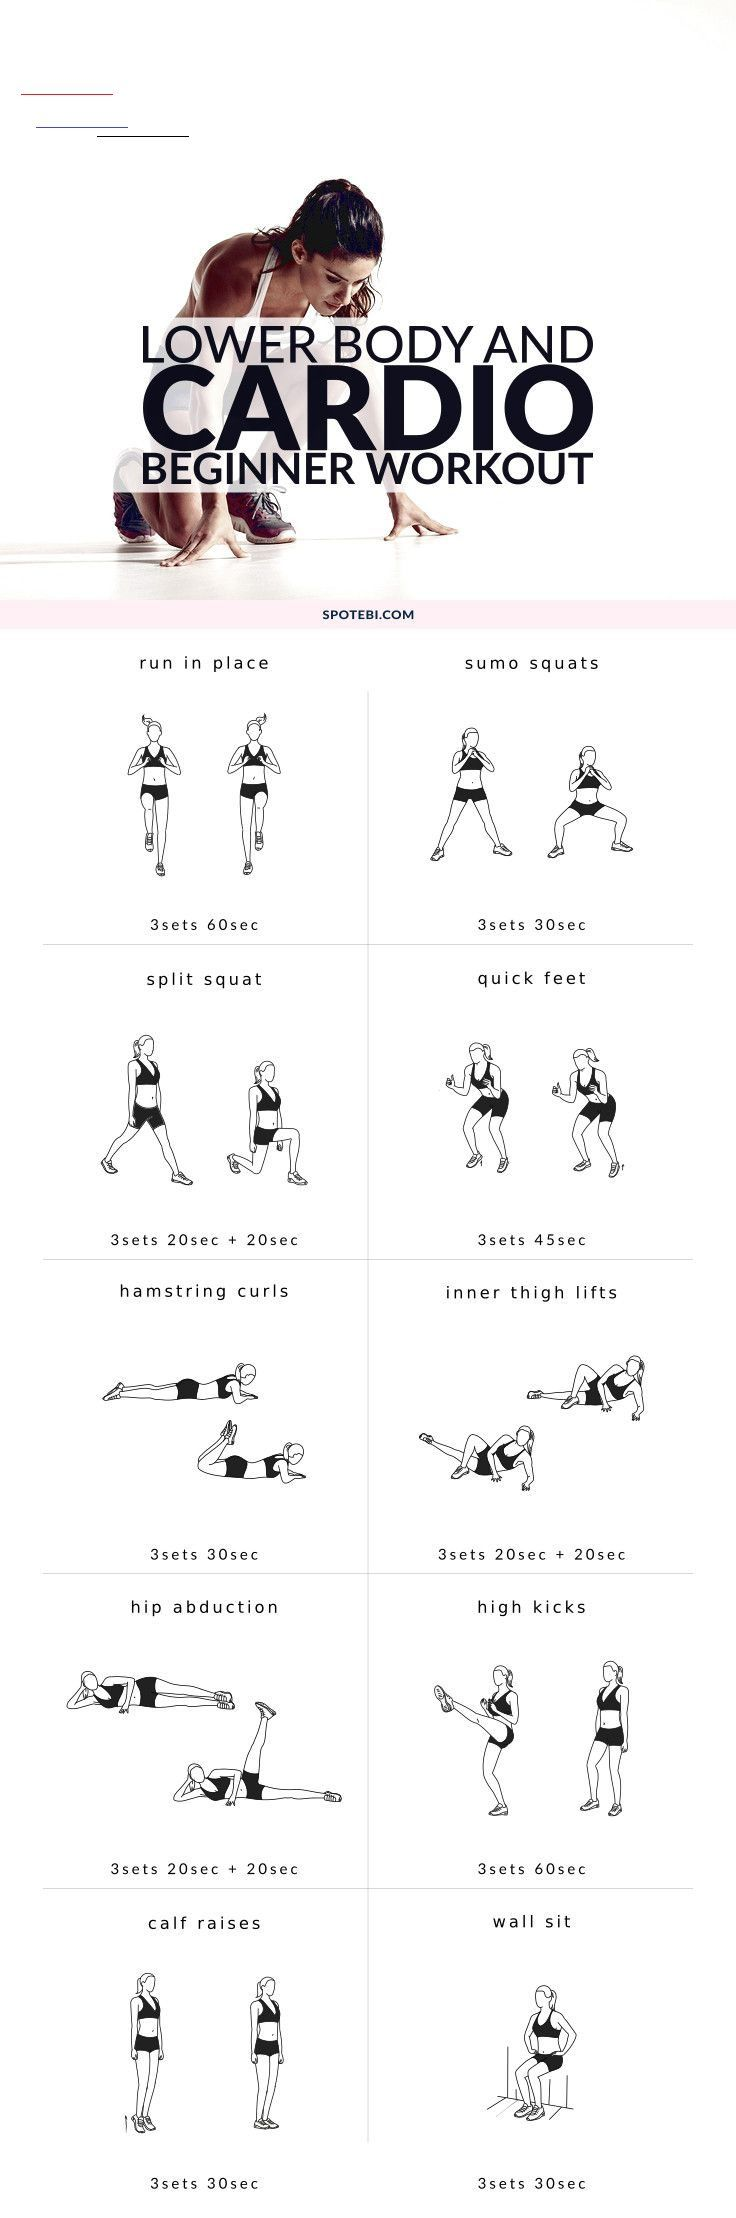 Lower Body & Cardio Beginner Workout Routine #Exercises #Fitness #Health #Fit #Exercise   Best Pictu...